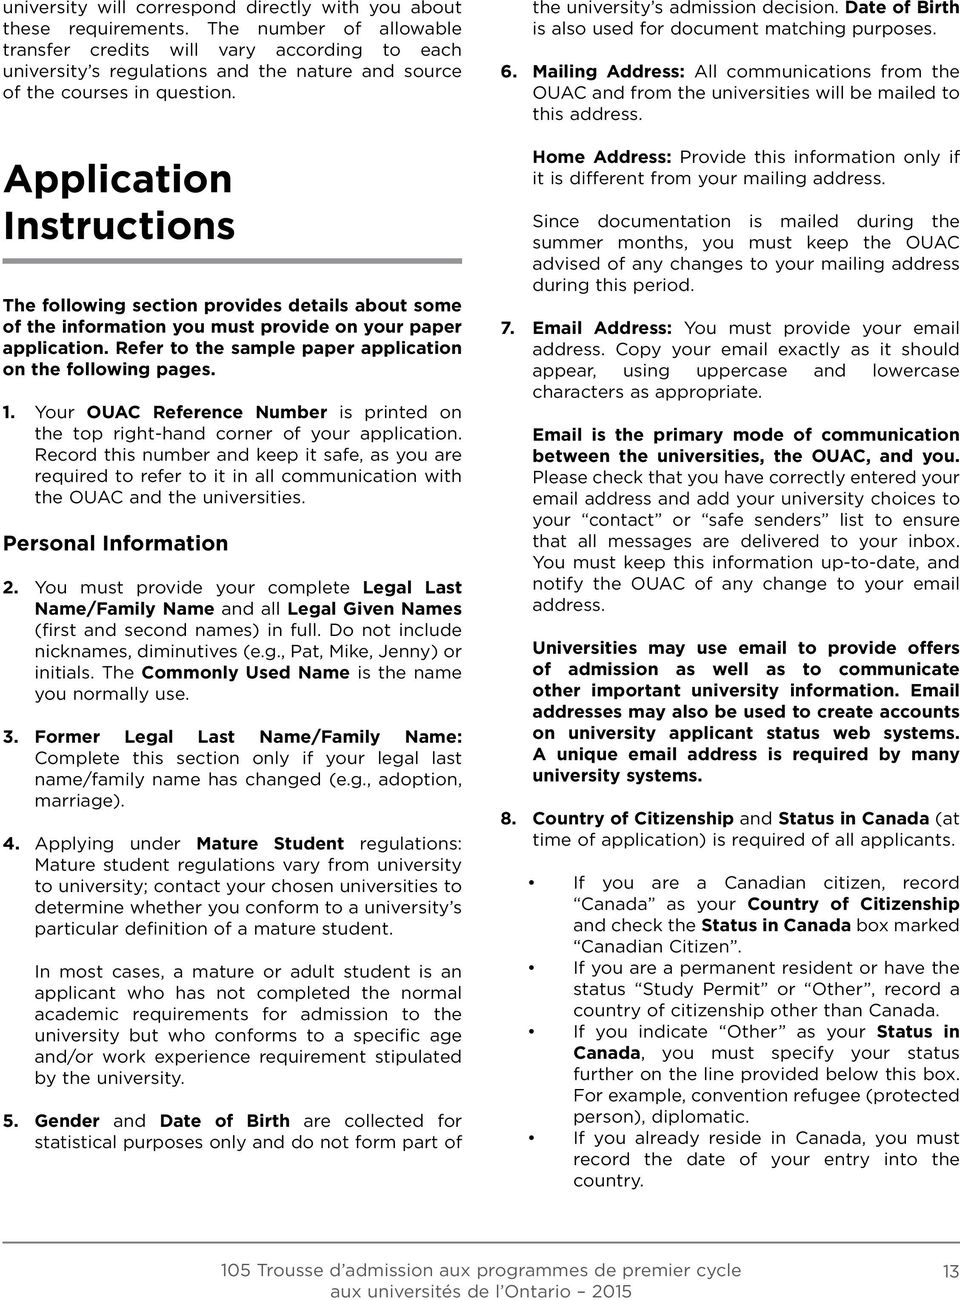 Application Instructions The following section provides details about some of the information you must provide on your paper application. Refer to the sample paper application on the following pages.